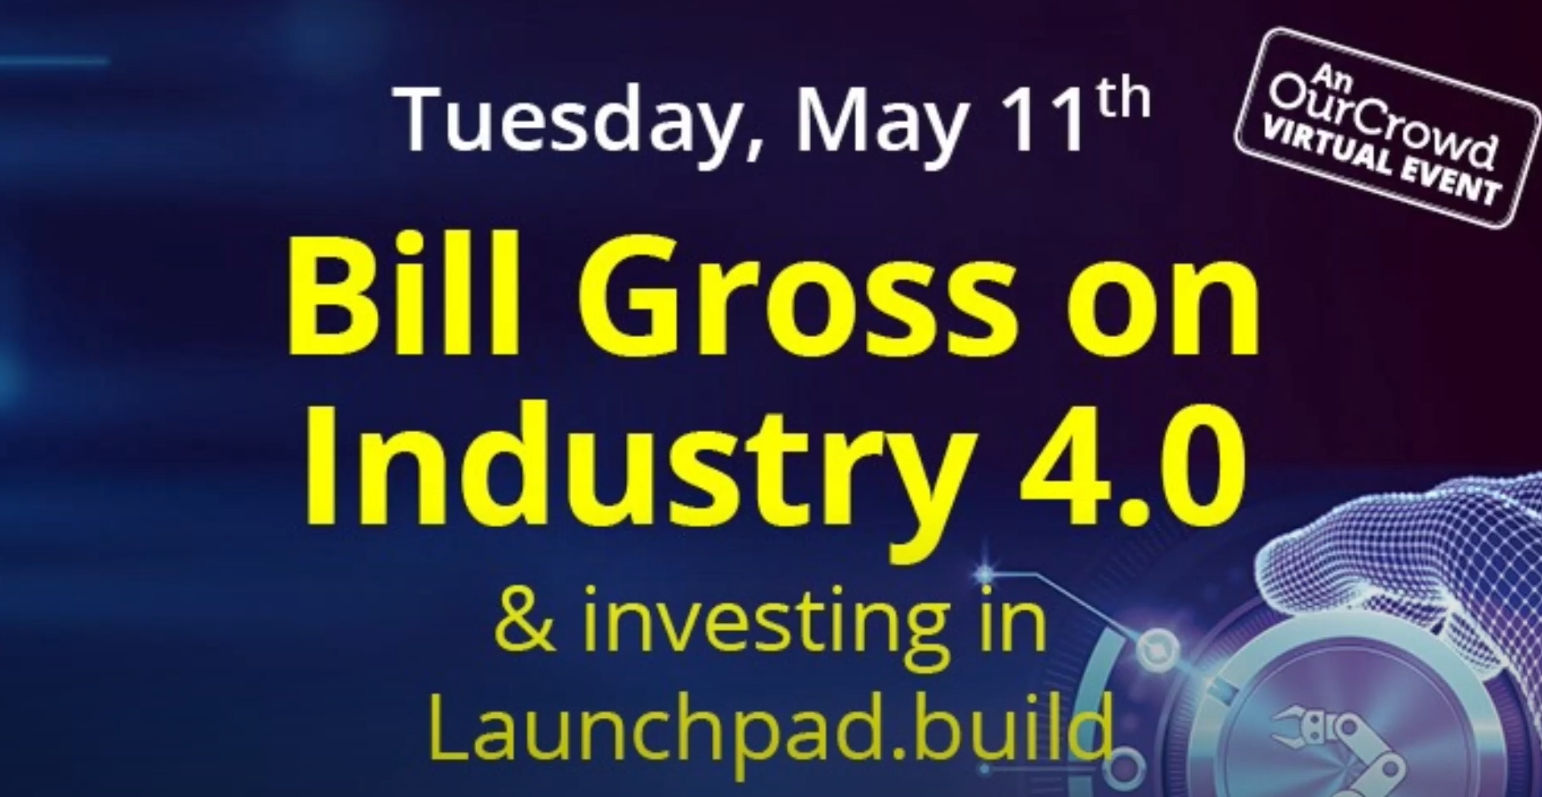 Bill Gross on Industry 4.0 and Investing in Launchpad.build